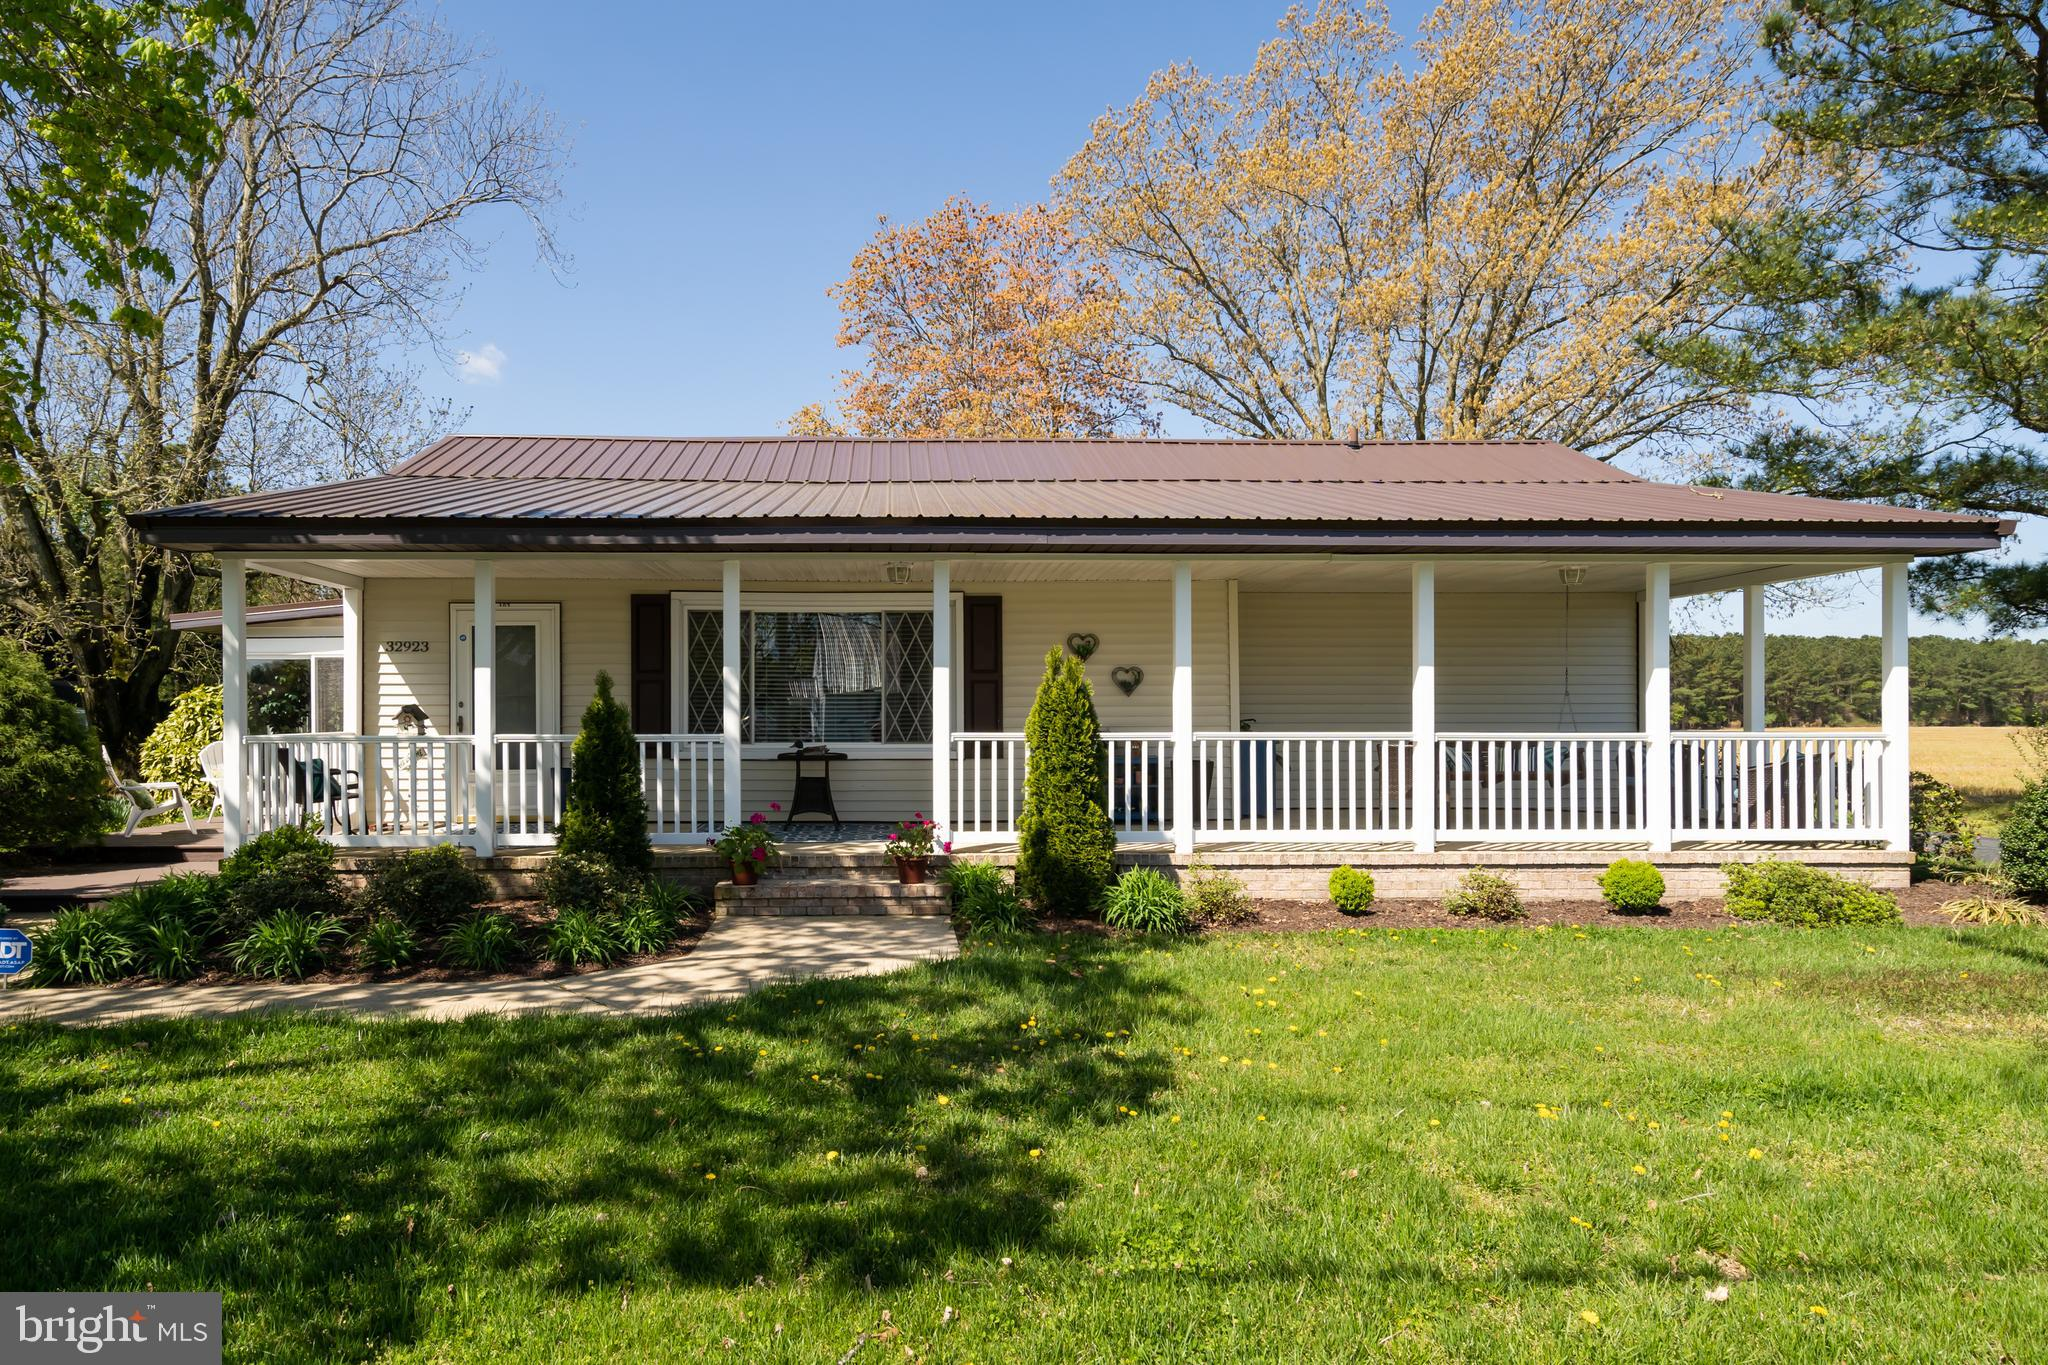 If your looking for a beautiful home in a quiet setting this is the one. Located on over 1.5 acres i